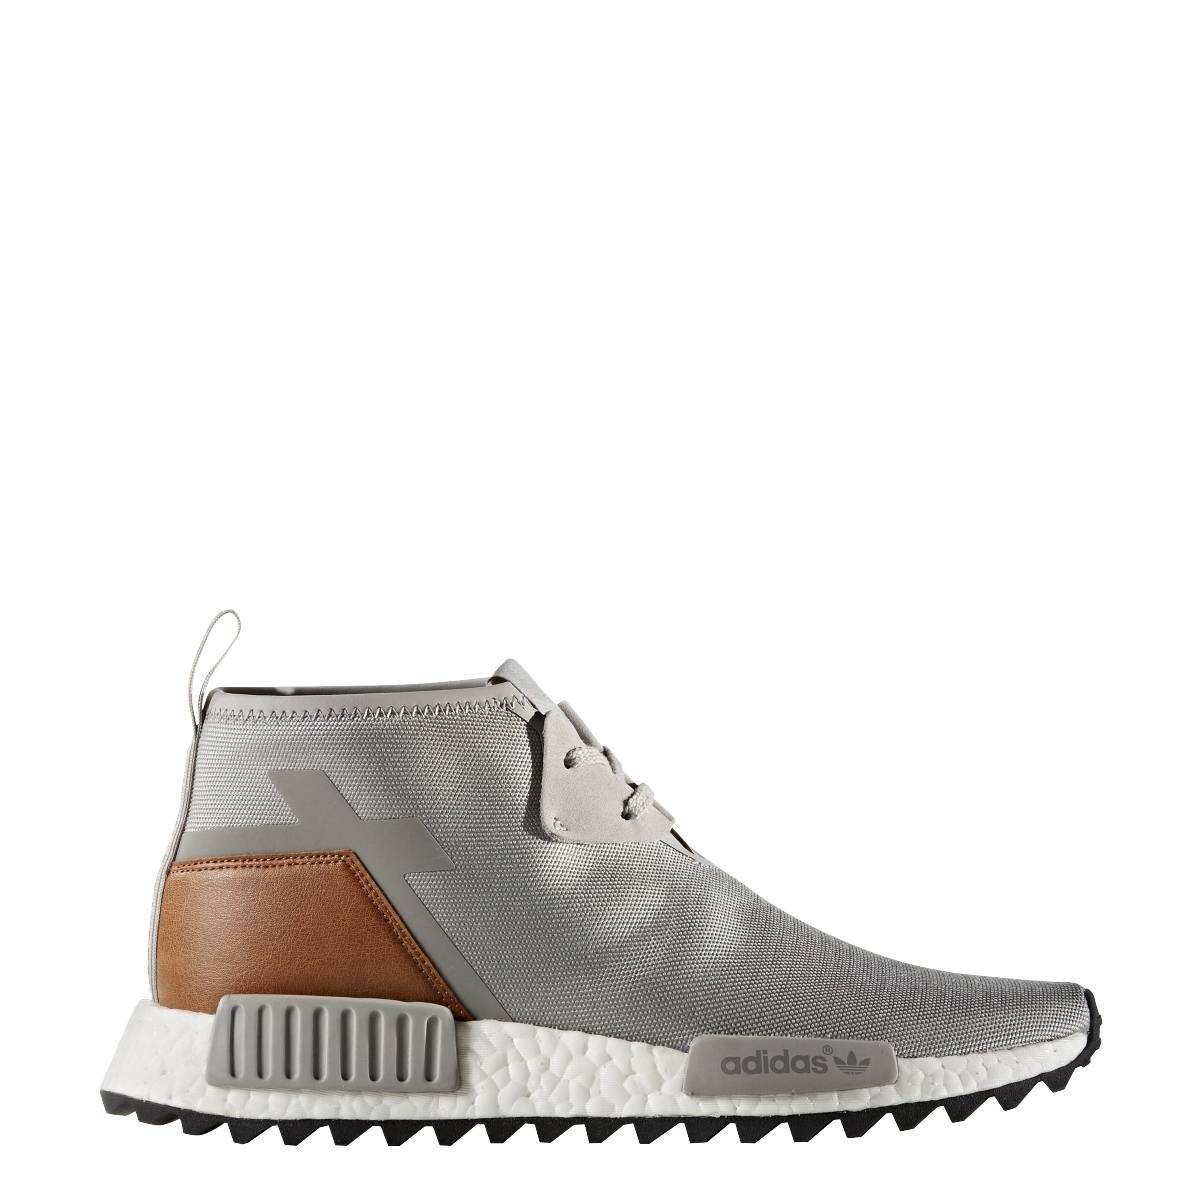 adidas NMD C1 TR chaussures: : Chaussures et Sacs